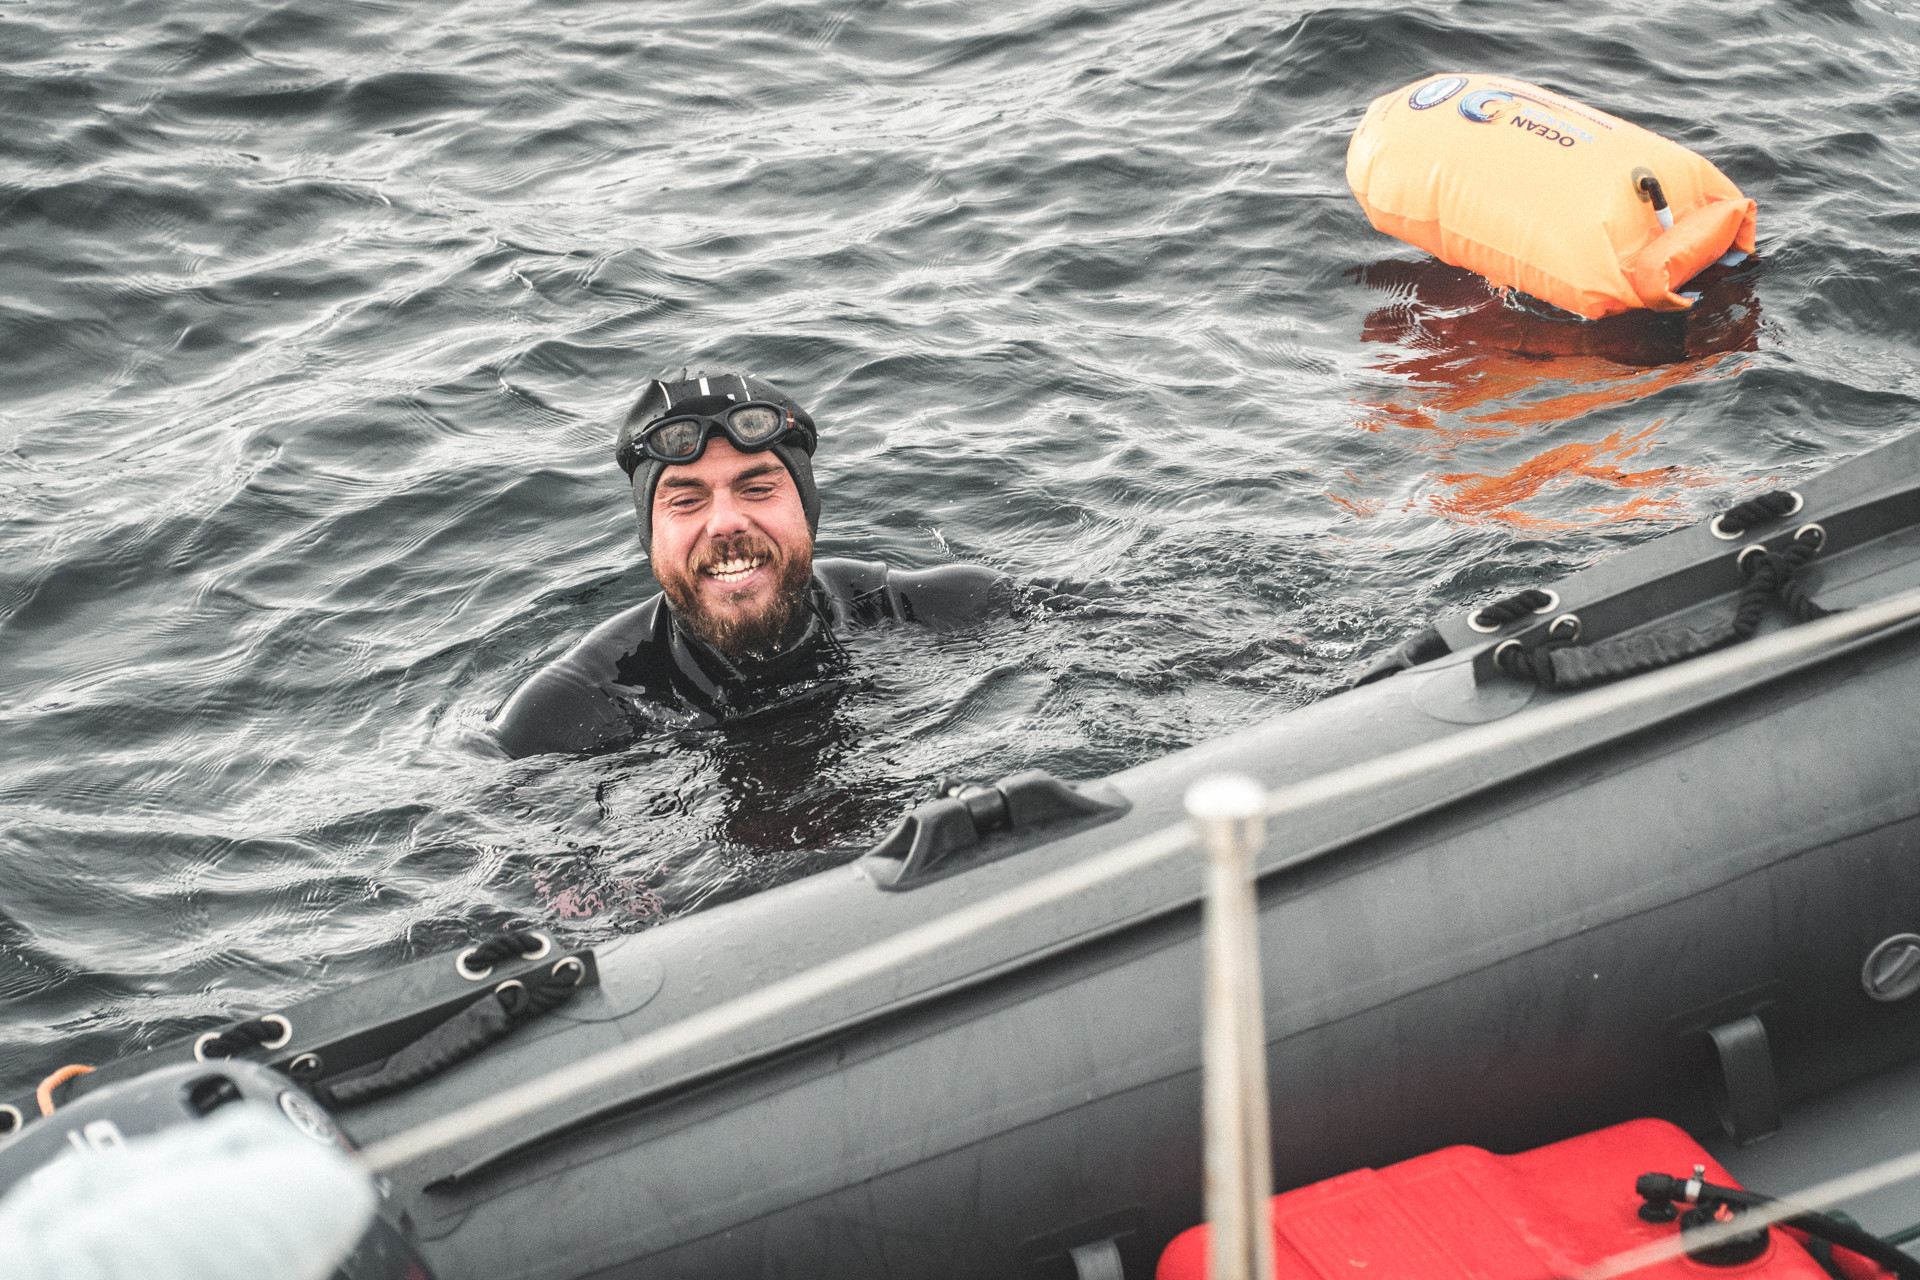 Ross Edgley - Great British Swim - John O Groats